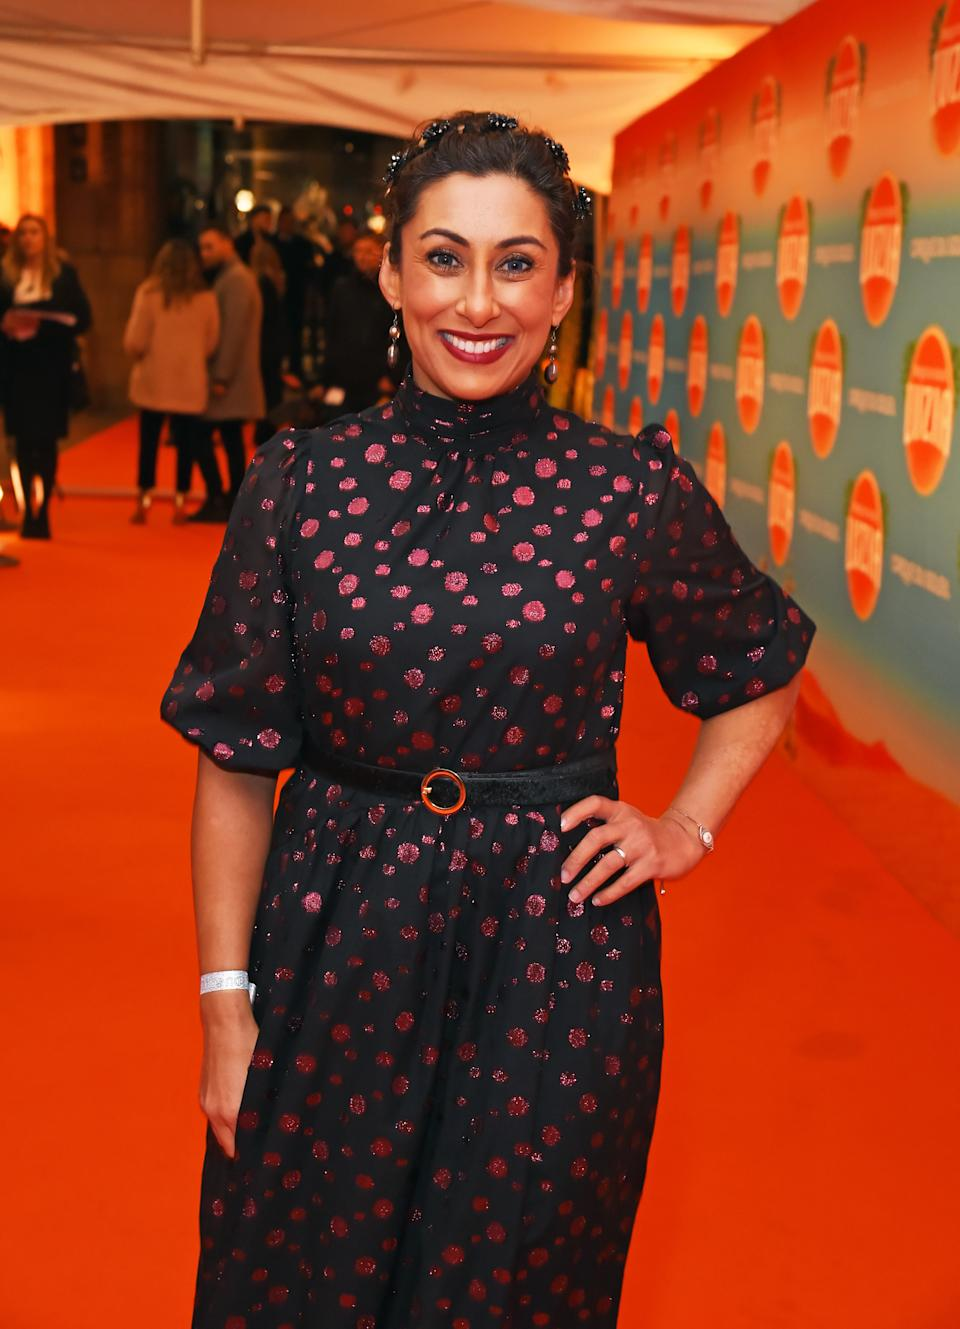 """LONDON, ENGLAND - JANUARY 15: Saira Khan arrives at the gala performance of Cirque De Soleil's """"LUIZA"""" at The Royal Albert Hall on January 15, 2020 in London, England. (Photo by David M. Benett/Dave Benett/Getty Images)"""